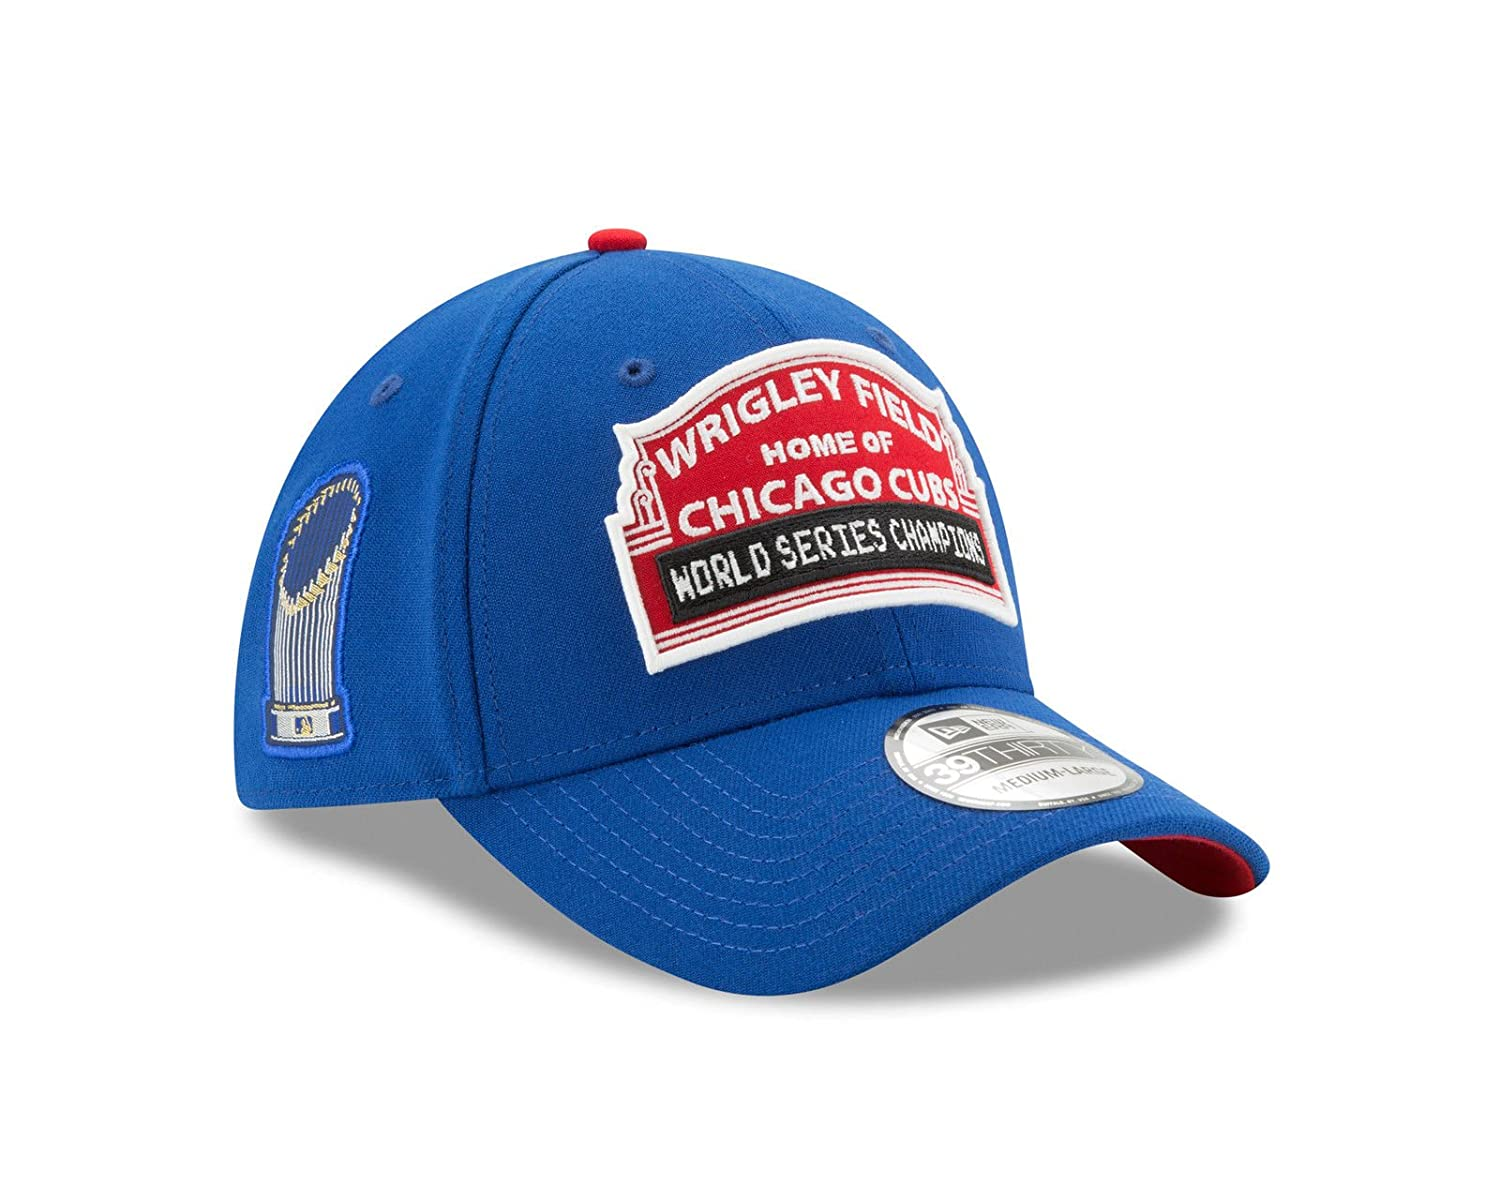 Amazon.com   New Era Chicago Cubs 2016 World Series Wrigley Field  Medium Large Flex Fit Championship Hat   Sports   Outdoors 7938f5b847b